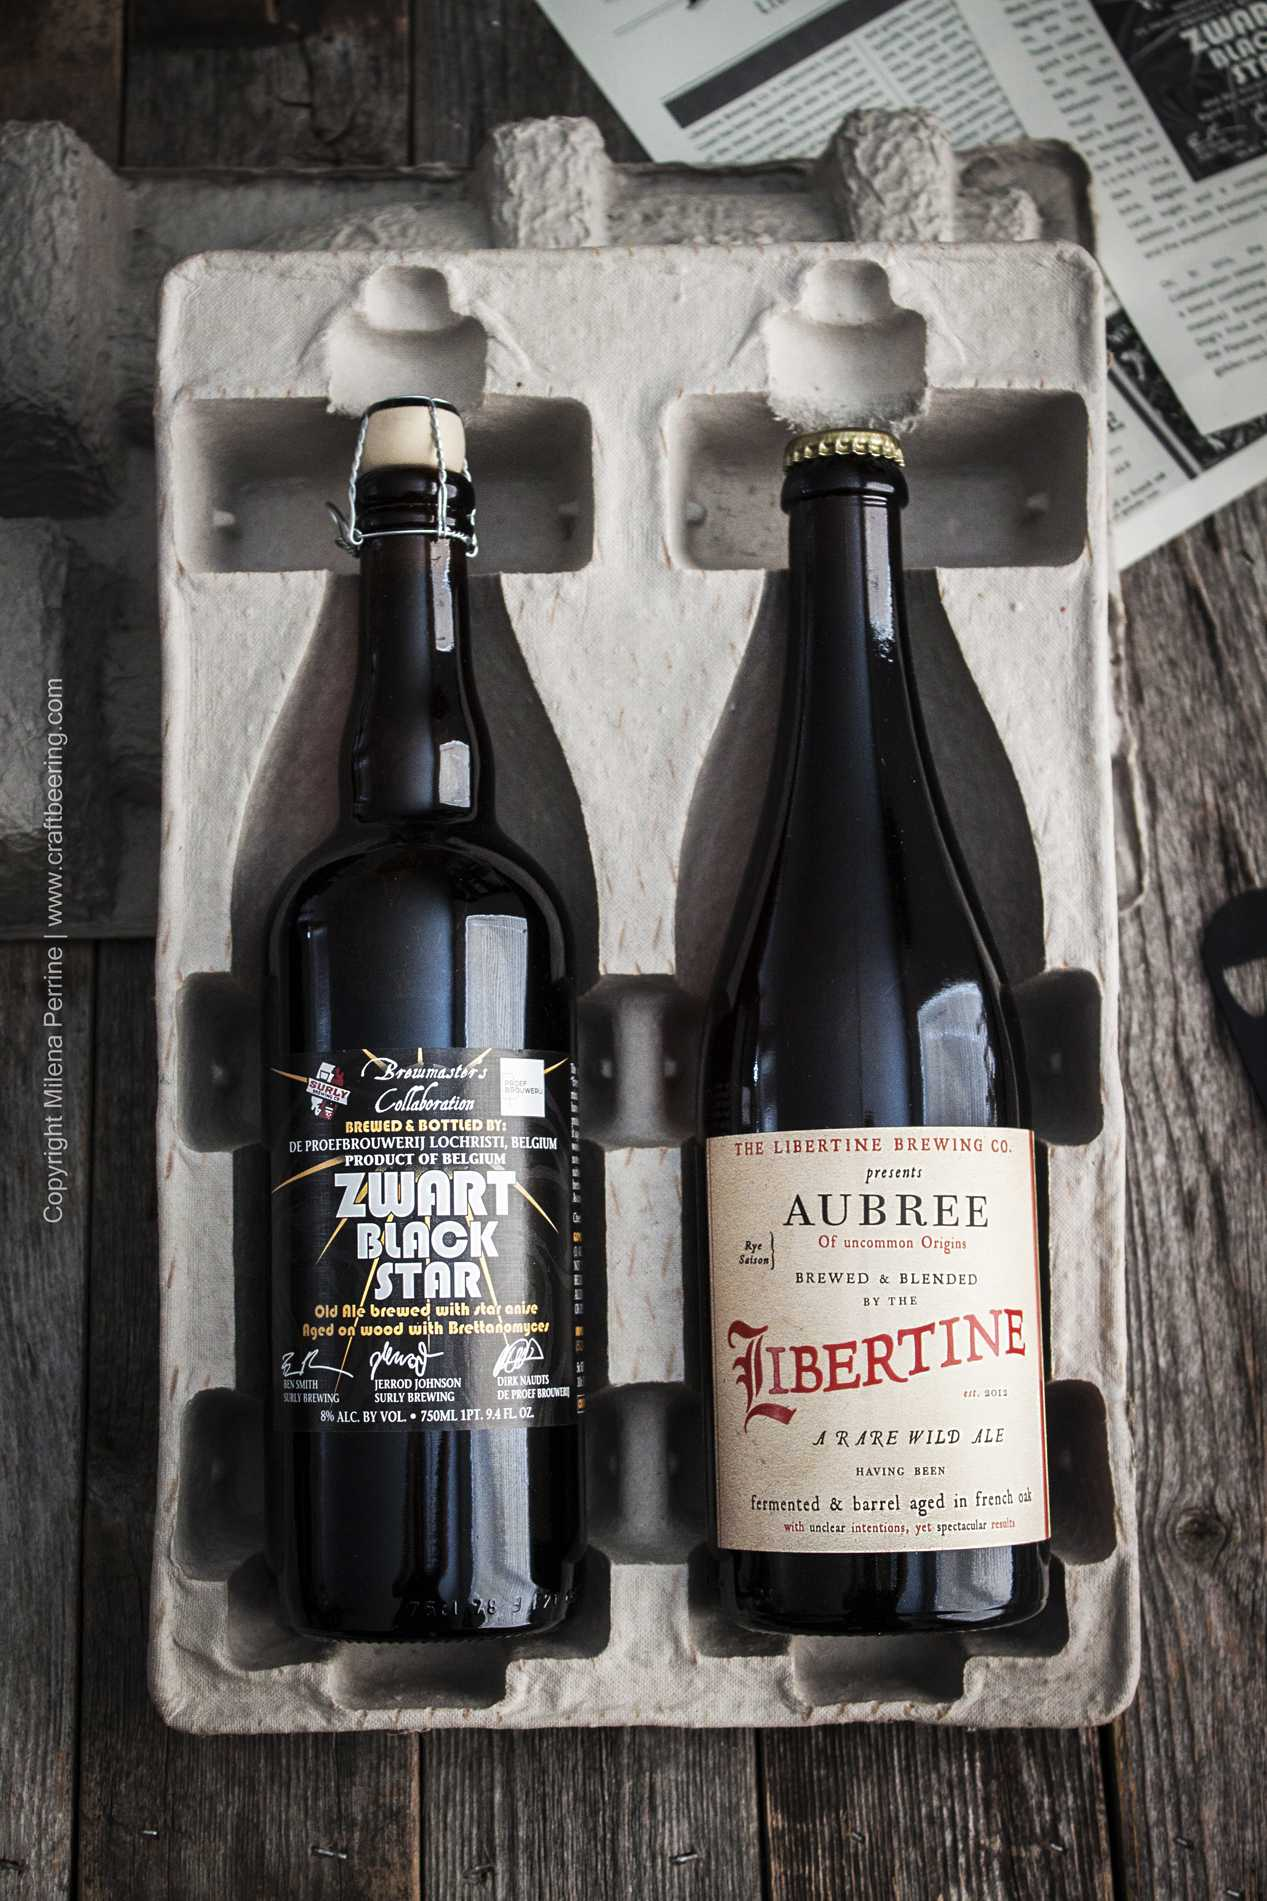 Typical brews from the Rare Beer Club - unique, limited edition beers.